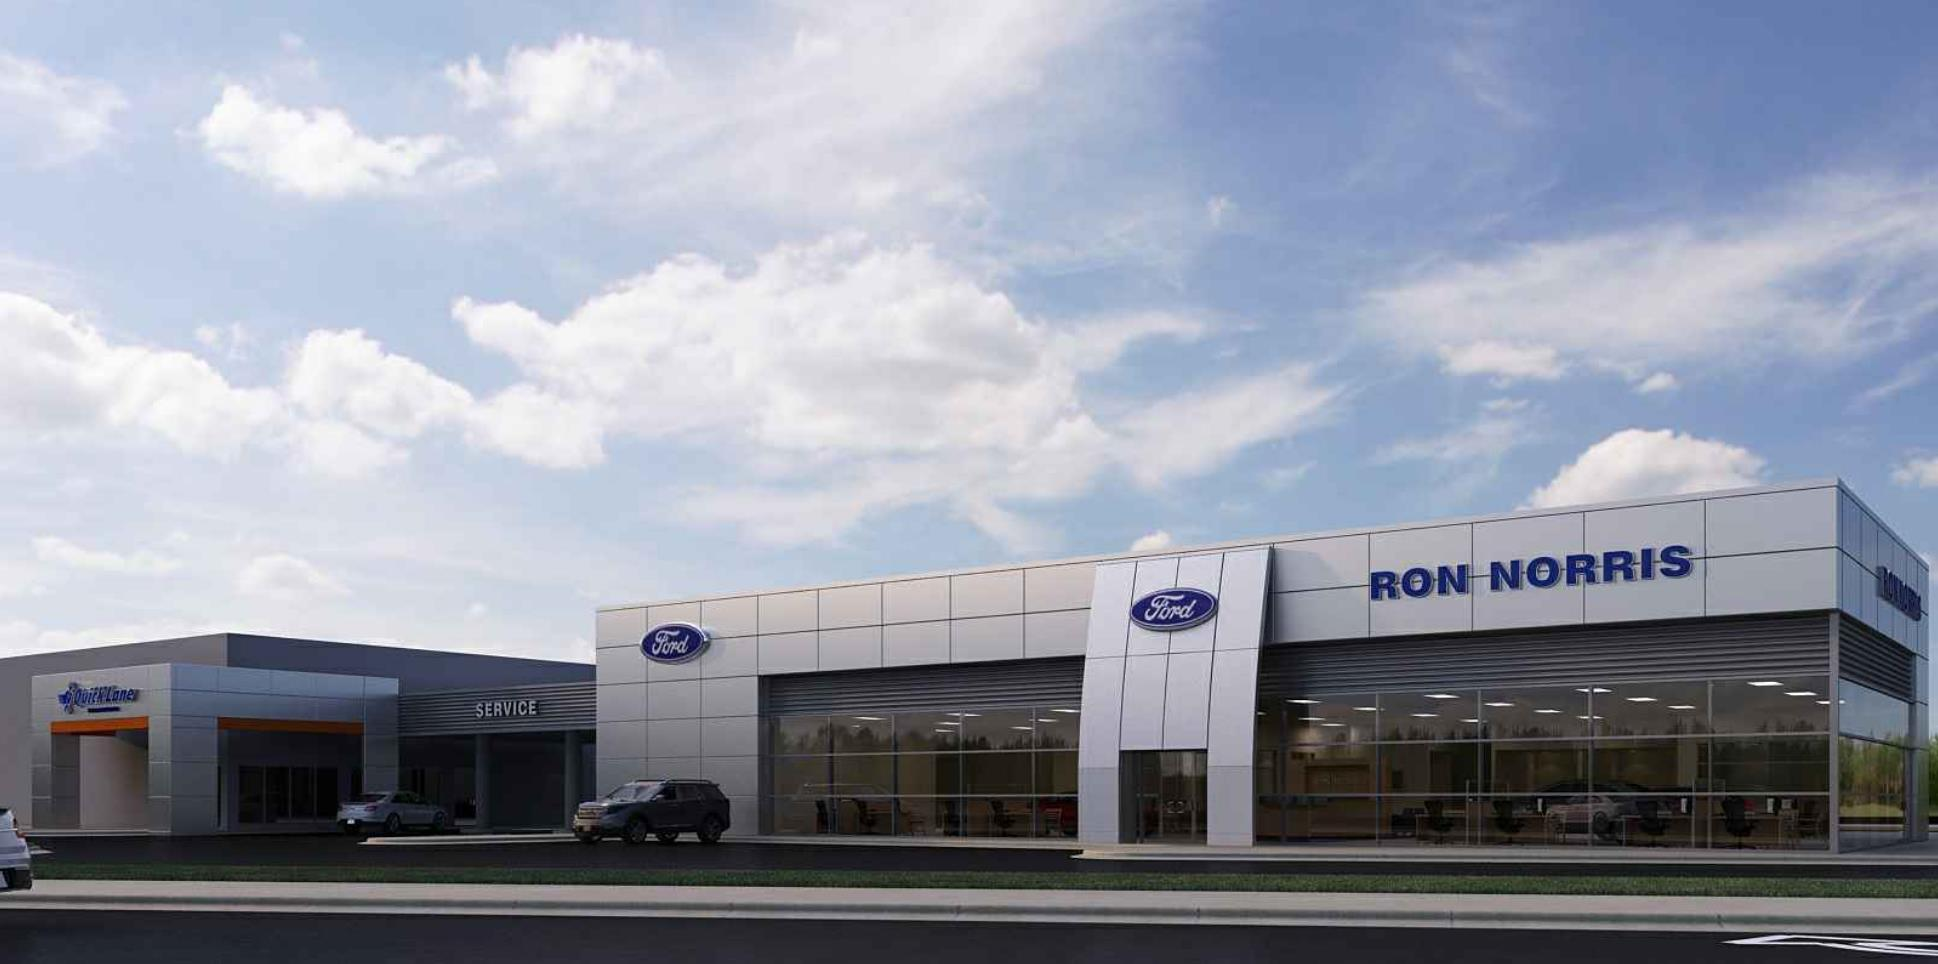 Ron Norris Ford Dealership Construction - Exterior Rendering - Titusville - RUSH Construction